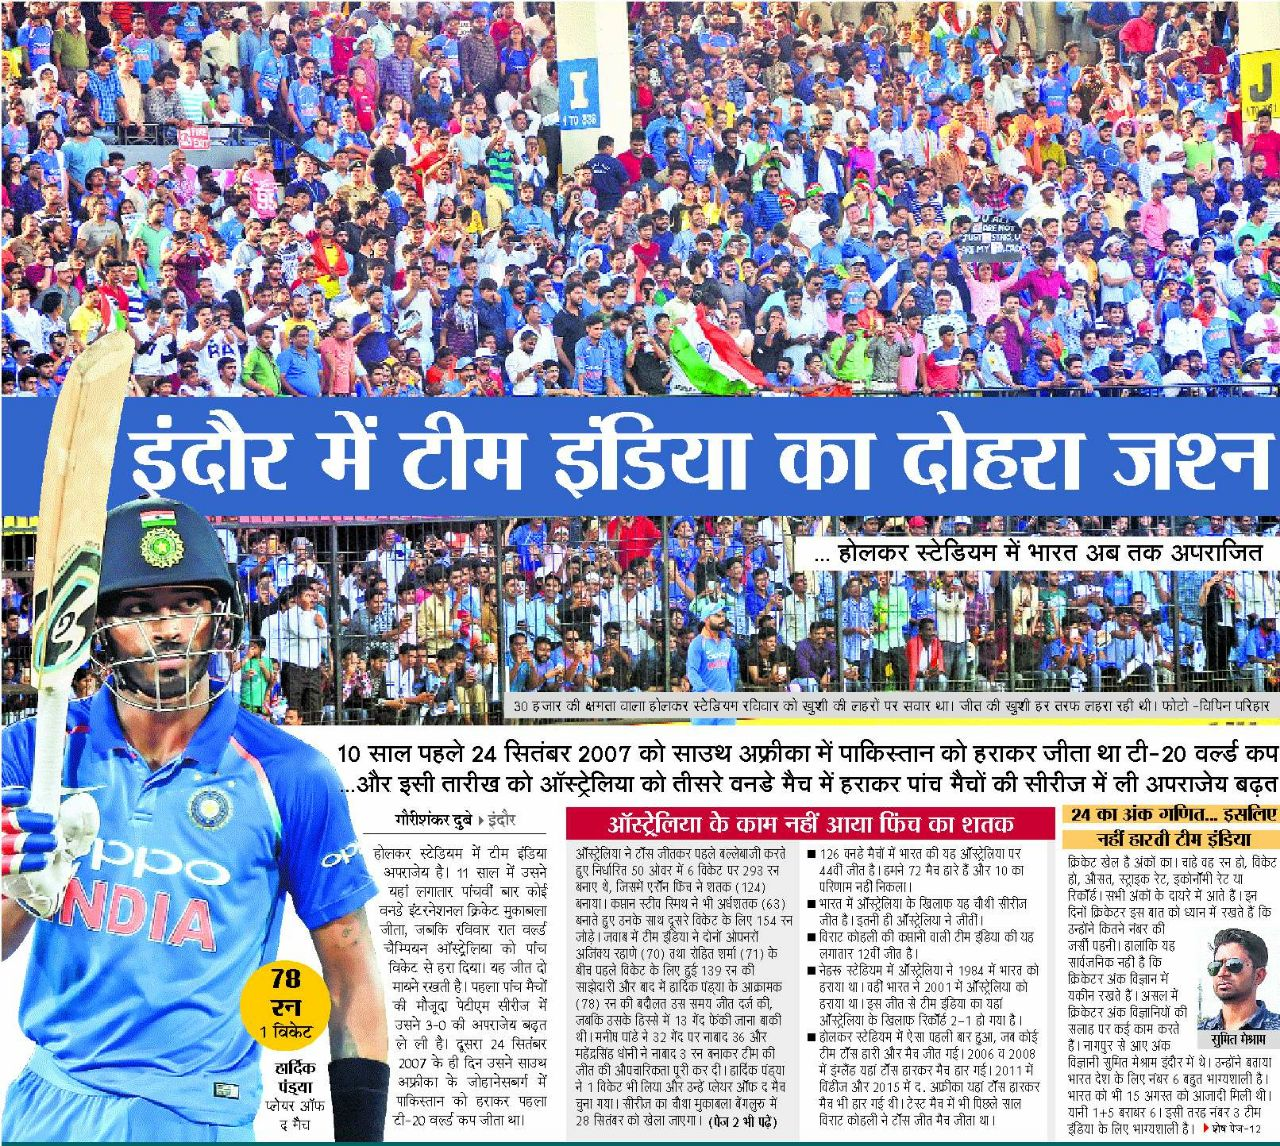 Number six and its significance on Indian cricket